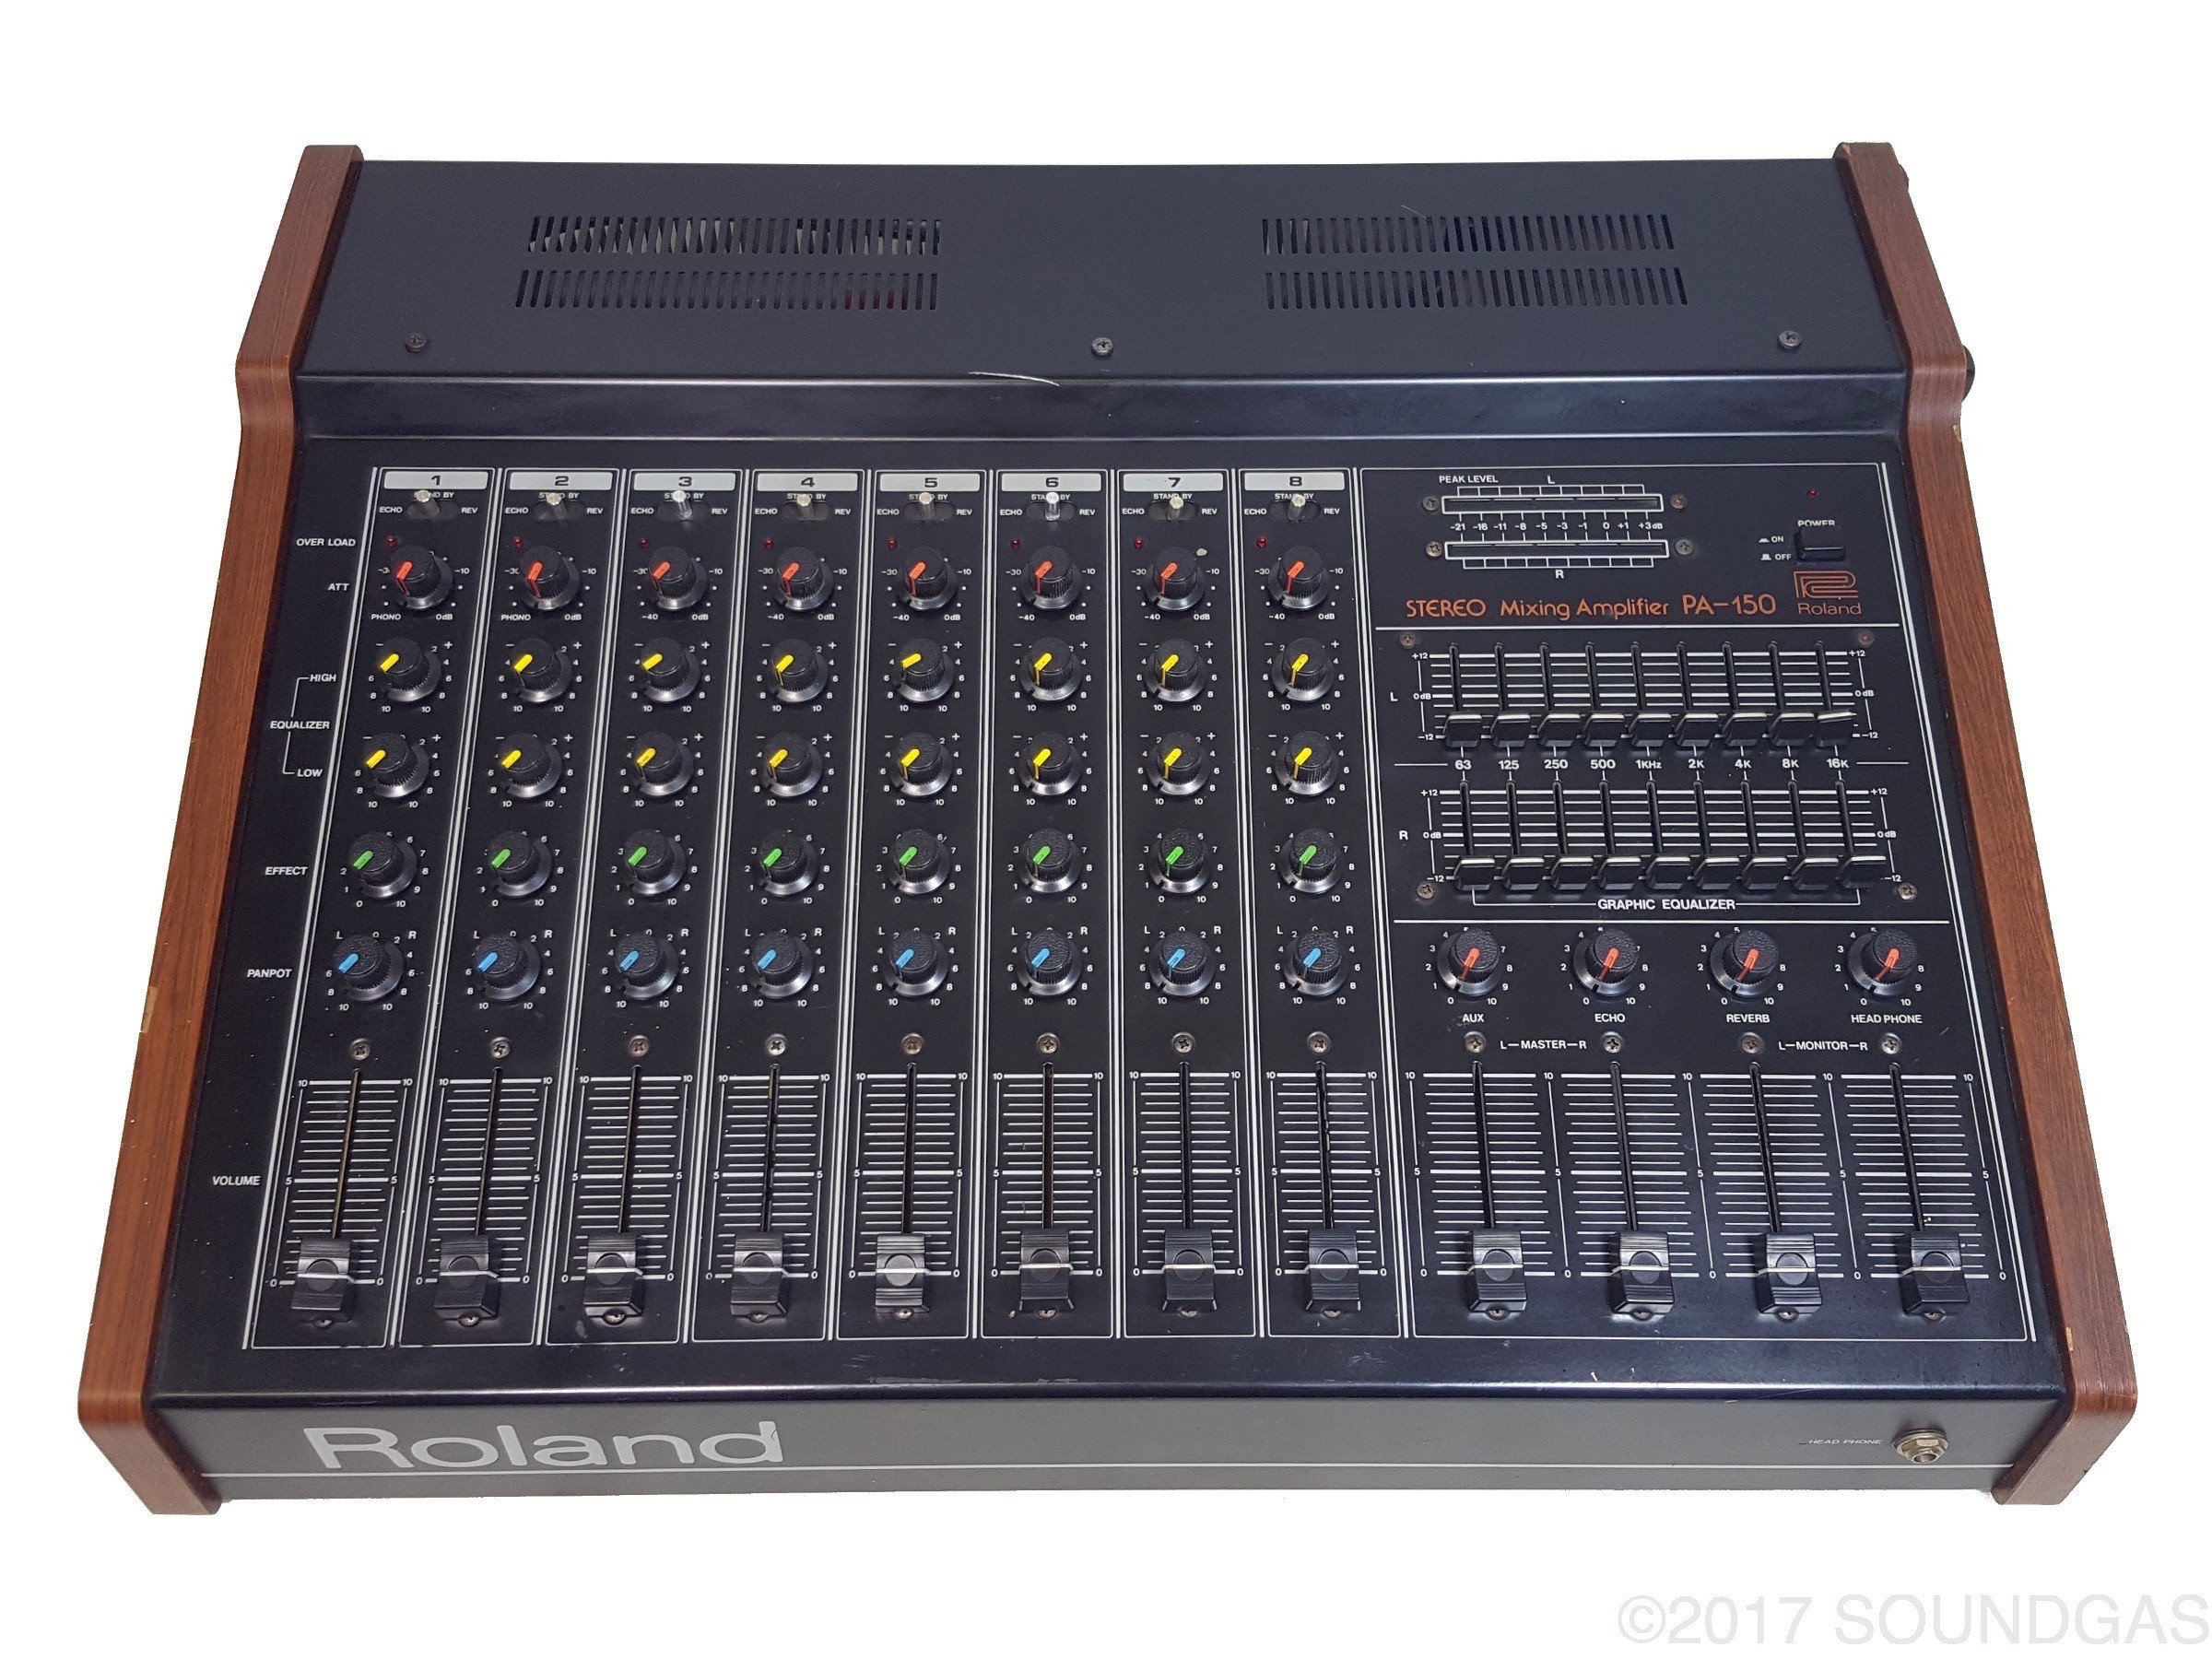 Roland PA-150 Stereo Mixer with Spring Reverb